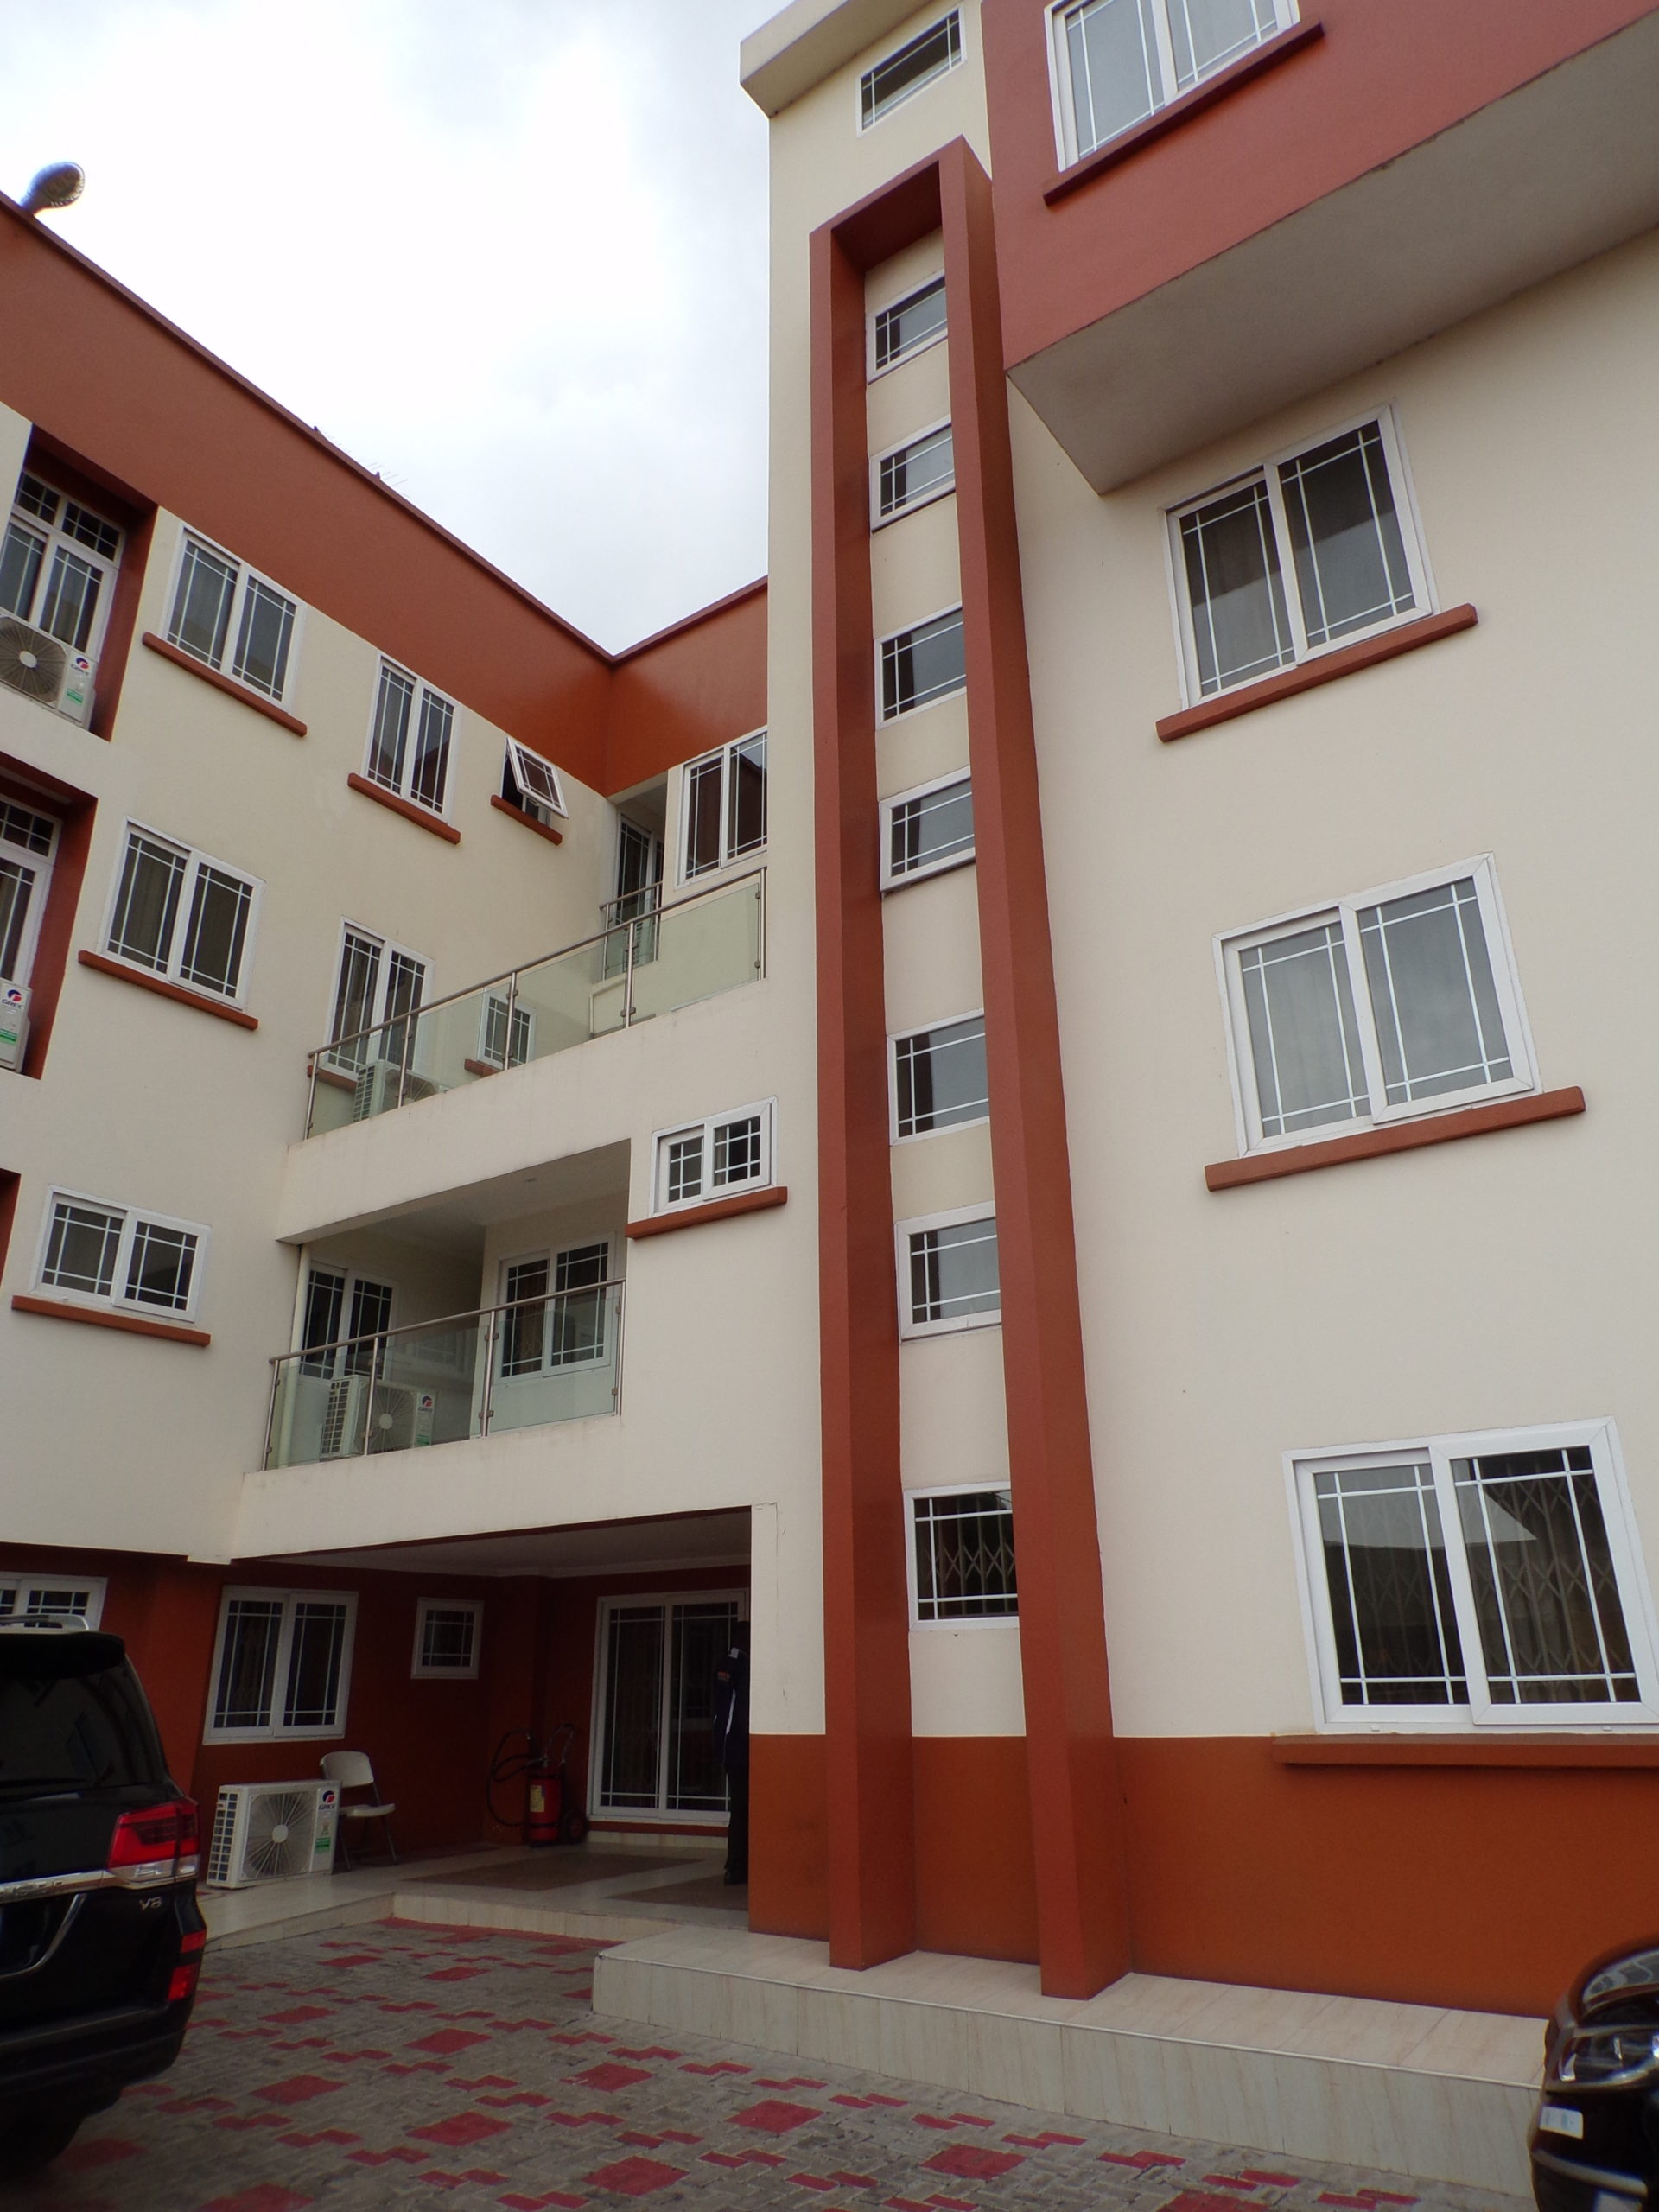 1 bedroom Short-Stay Apartment for Rent at Dzorwulu